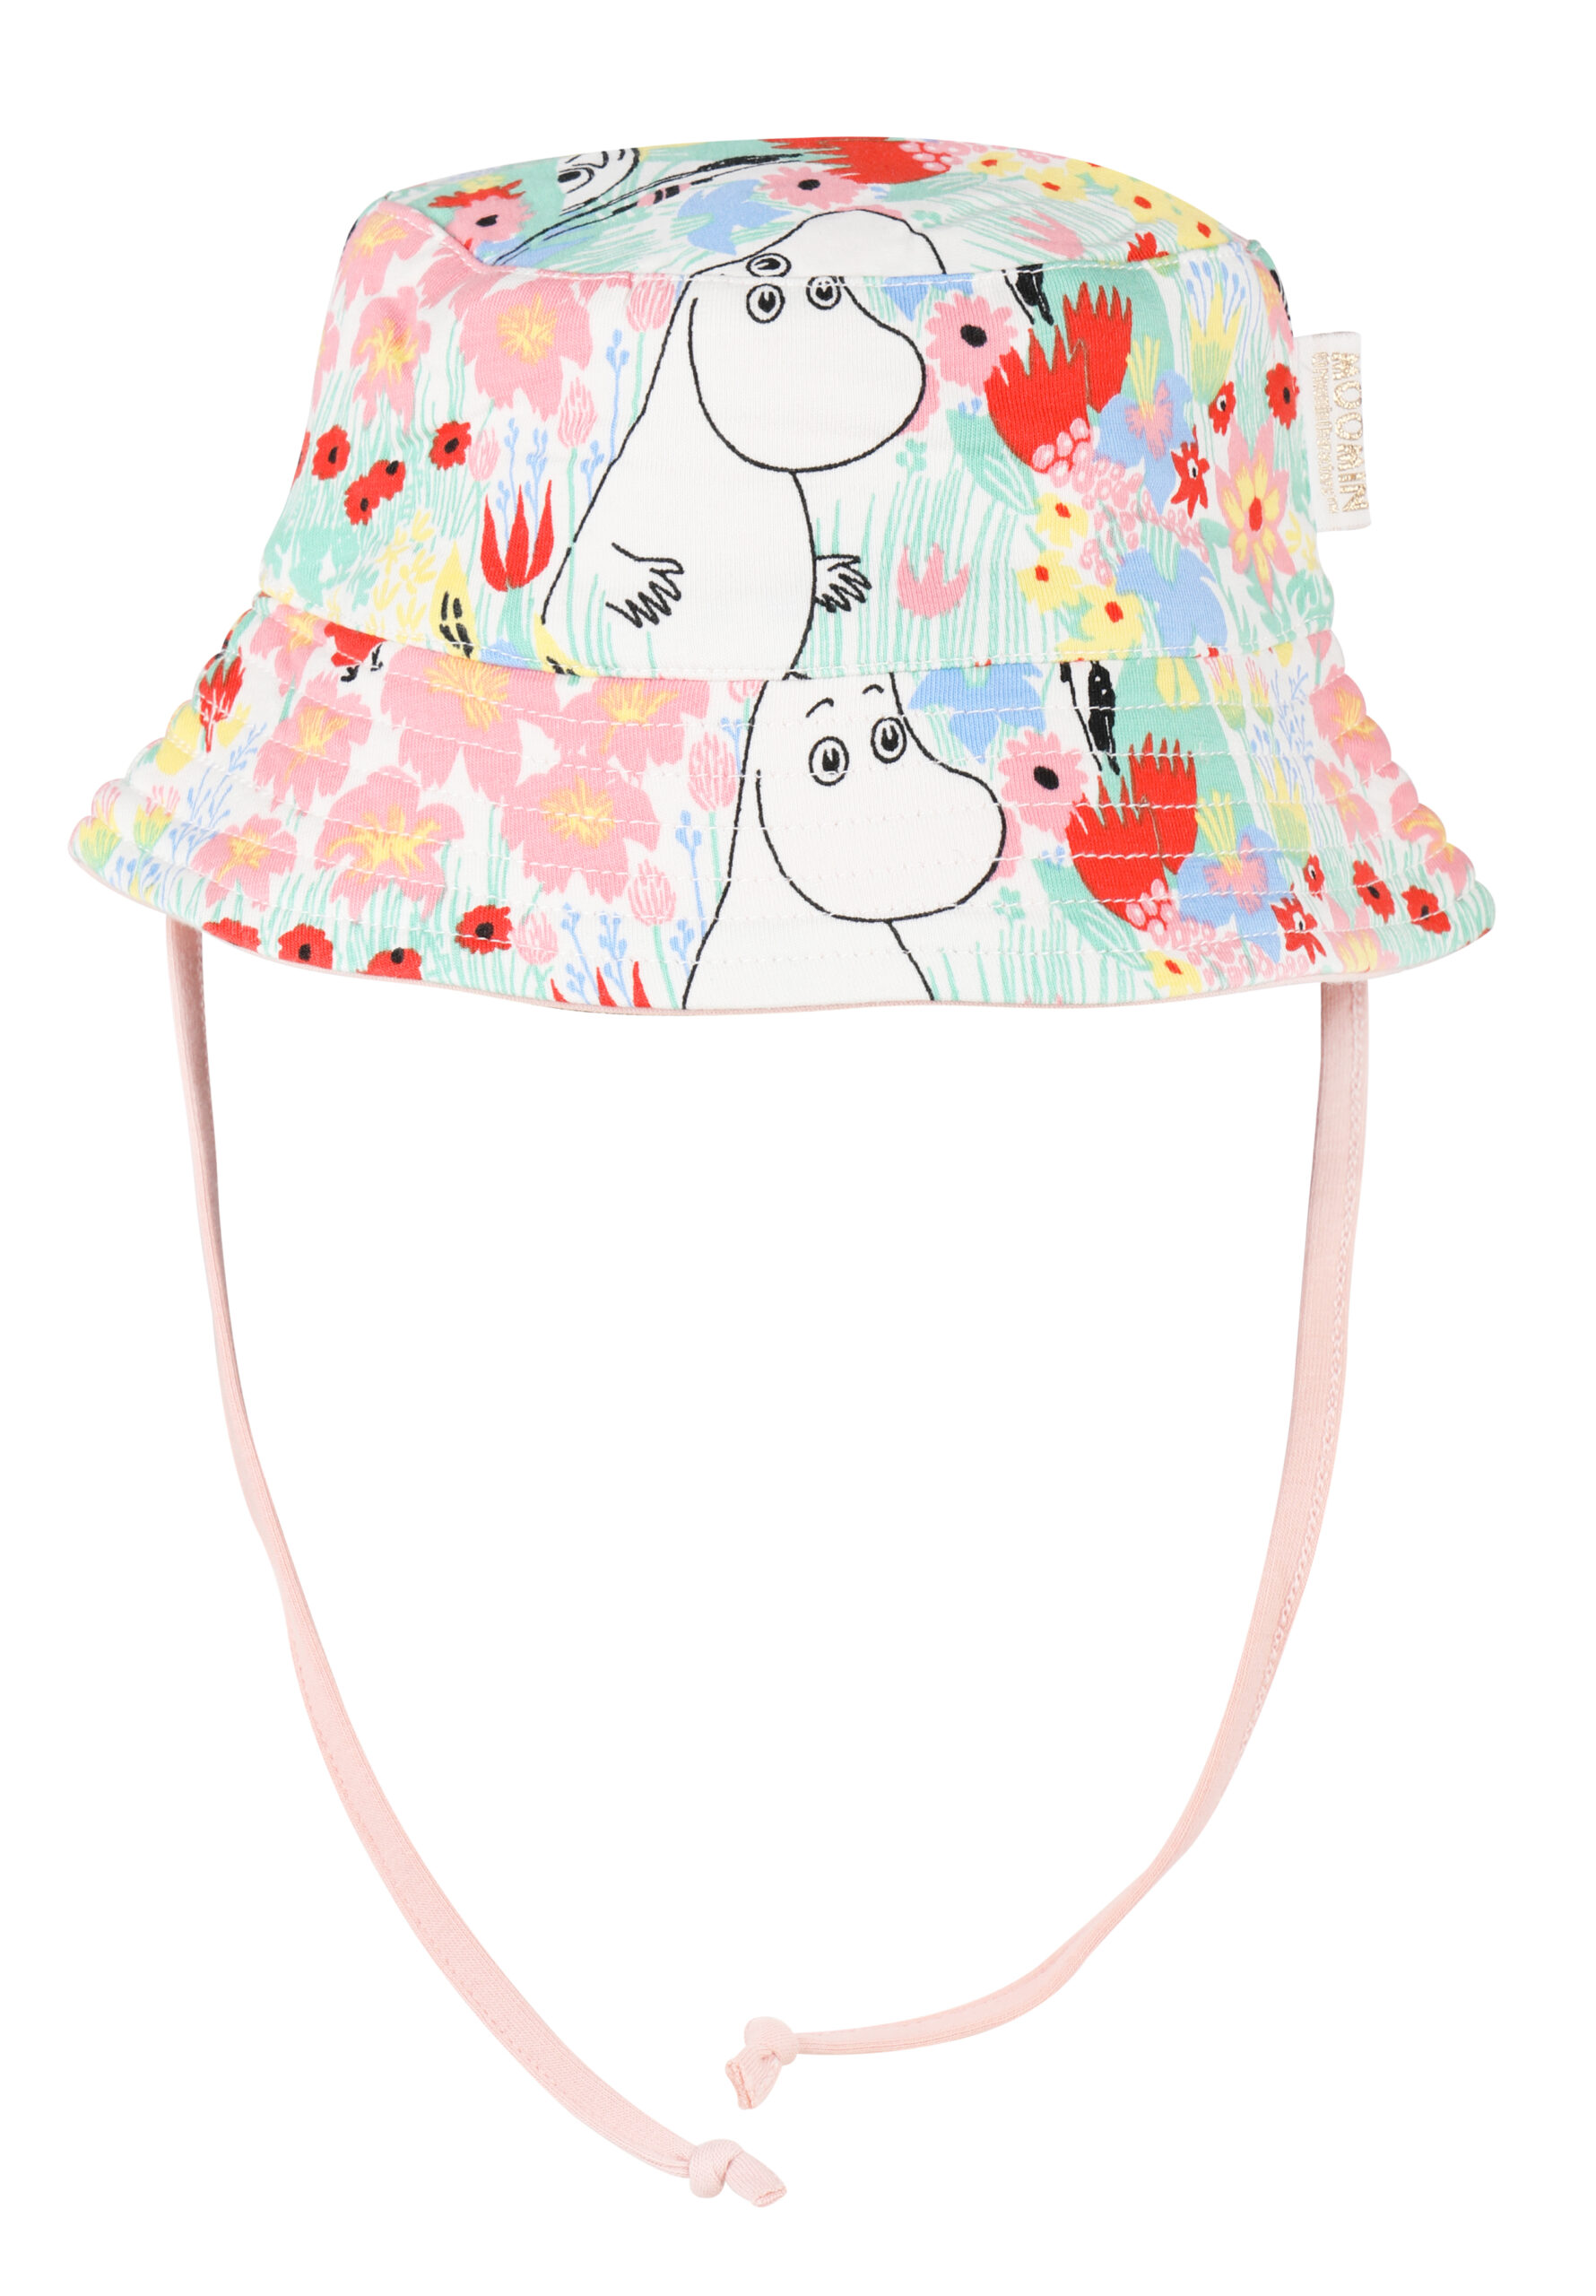 Martinex Moomin Buttercup Hat Baby Off-White